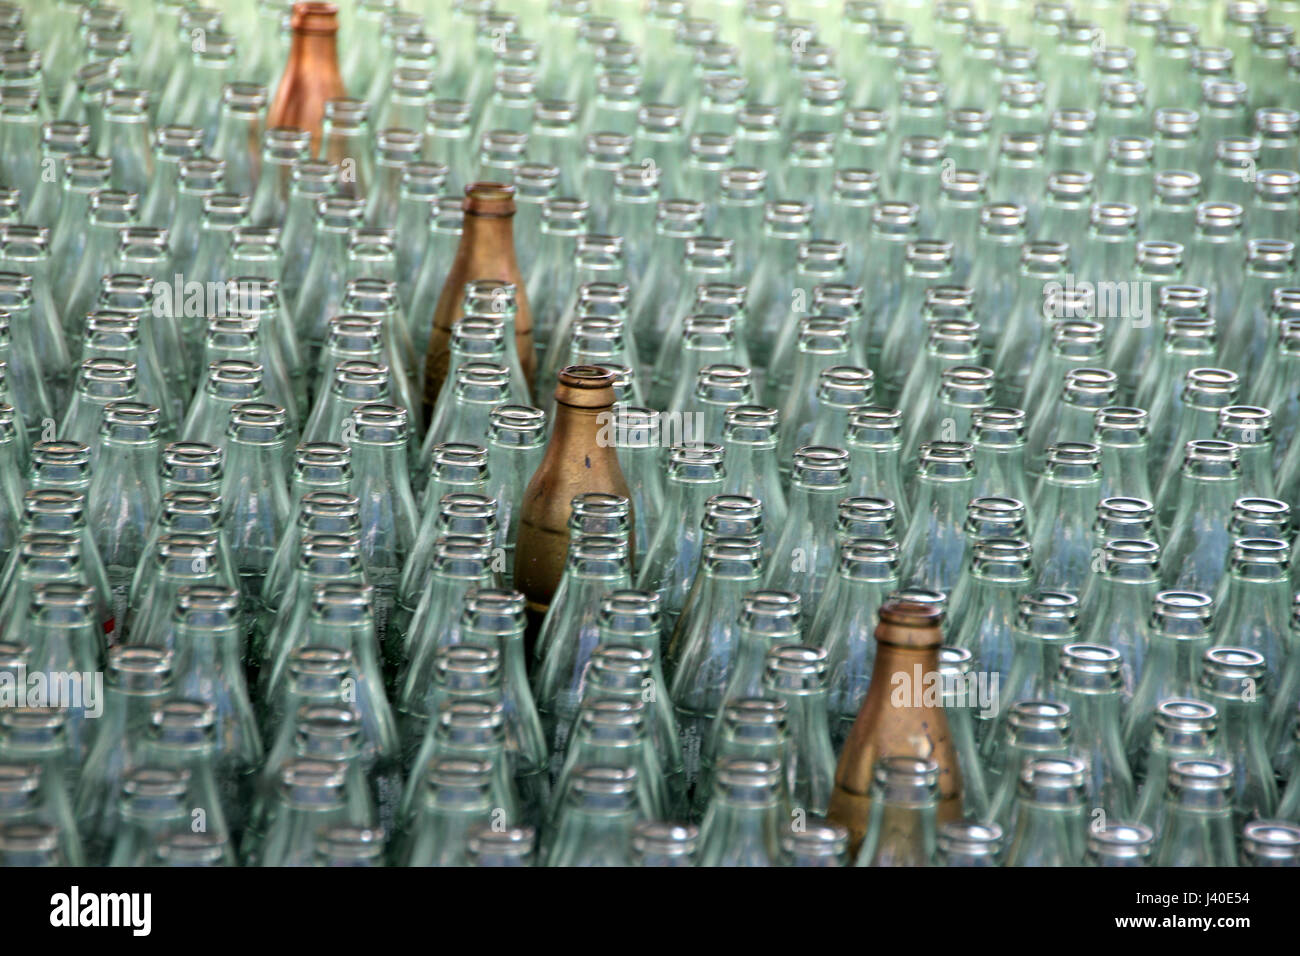 Glass bottles together with select golden bottles. Ring toss game. - Stock Image